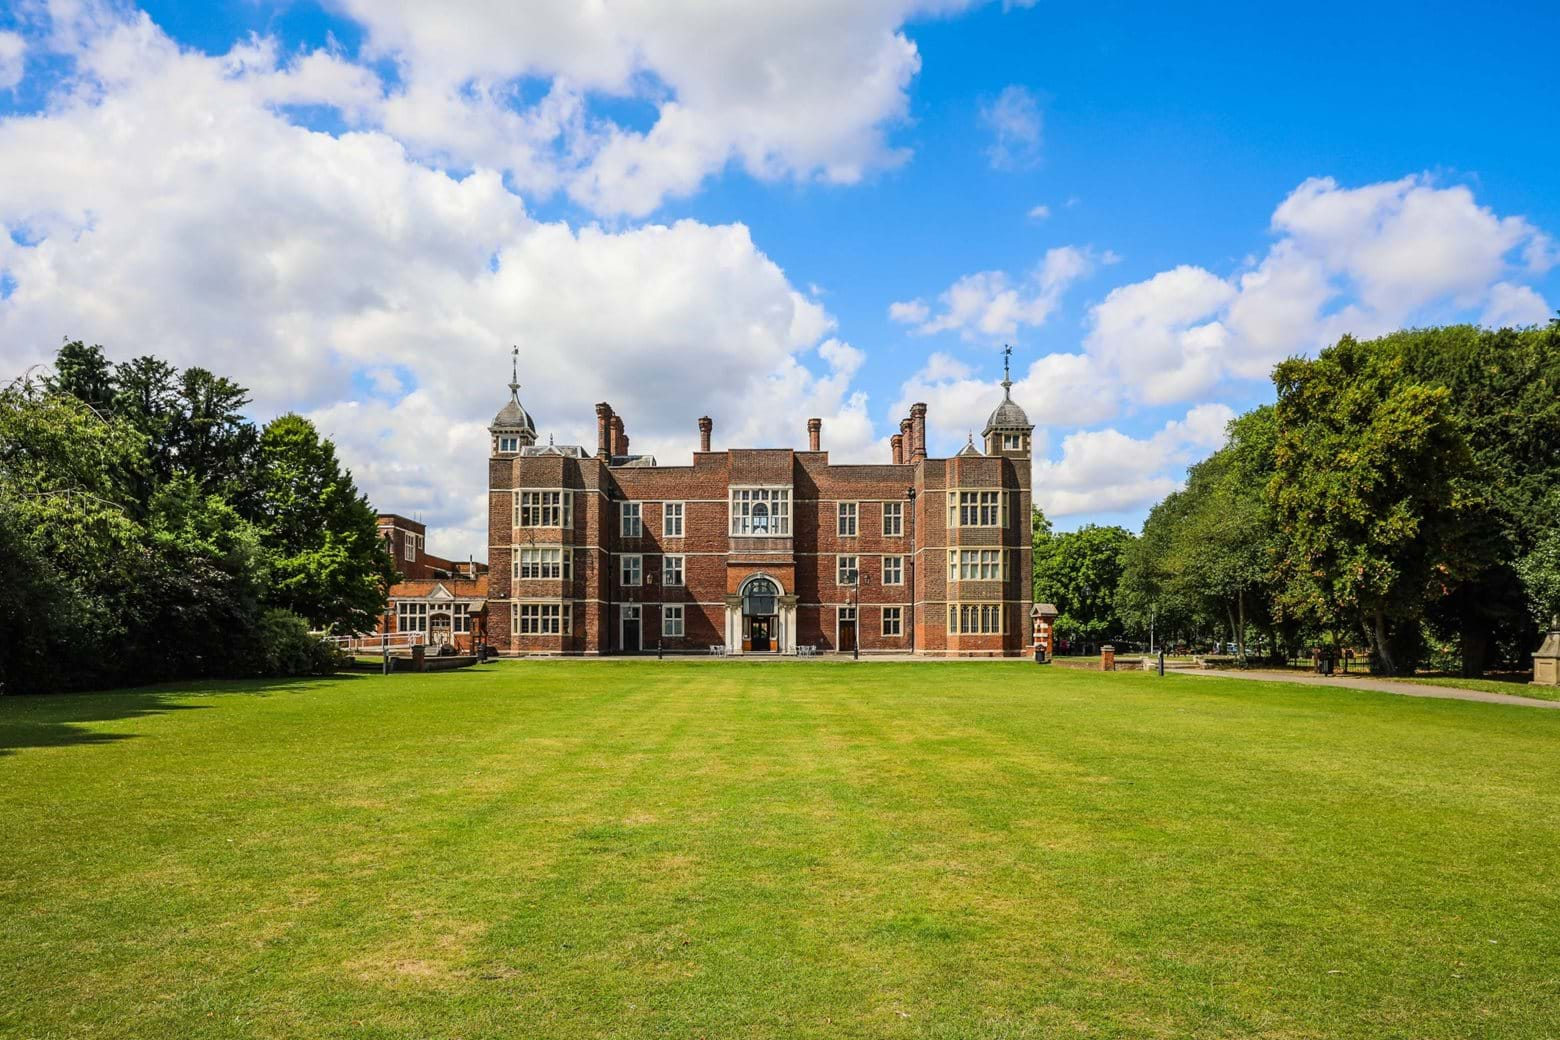 Valley House | Local area photography - Charlton House